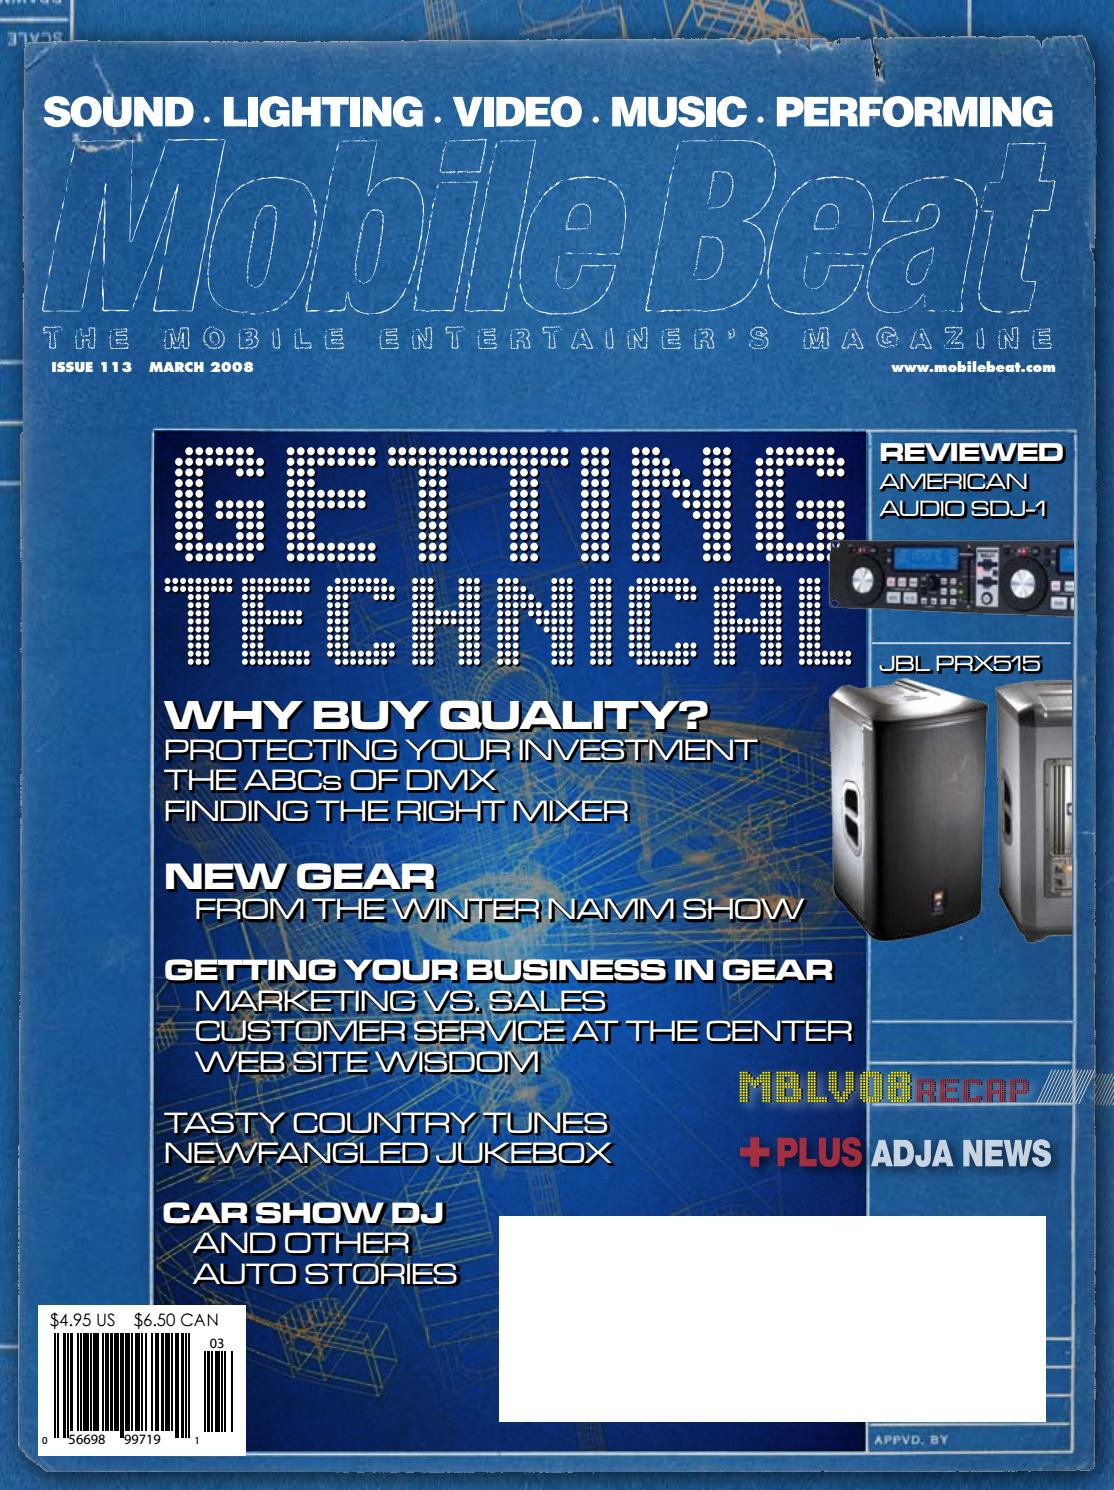 Issue 113 - November 2008 - Getting Technical by Mobile Beat